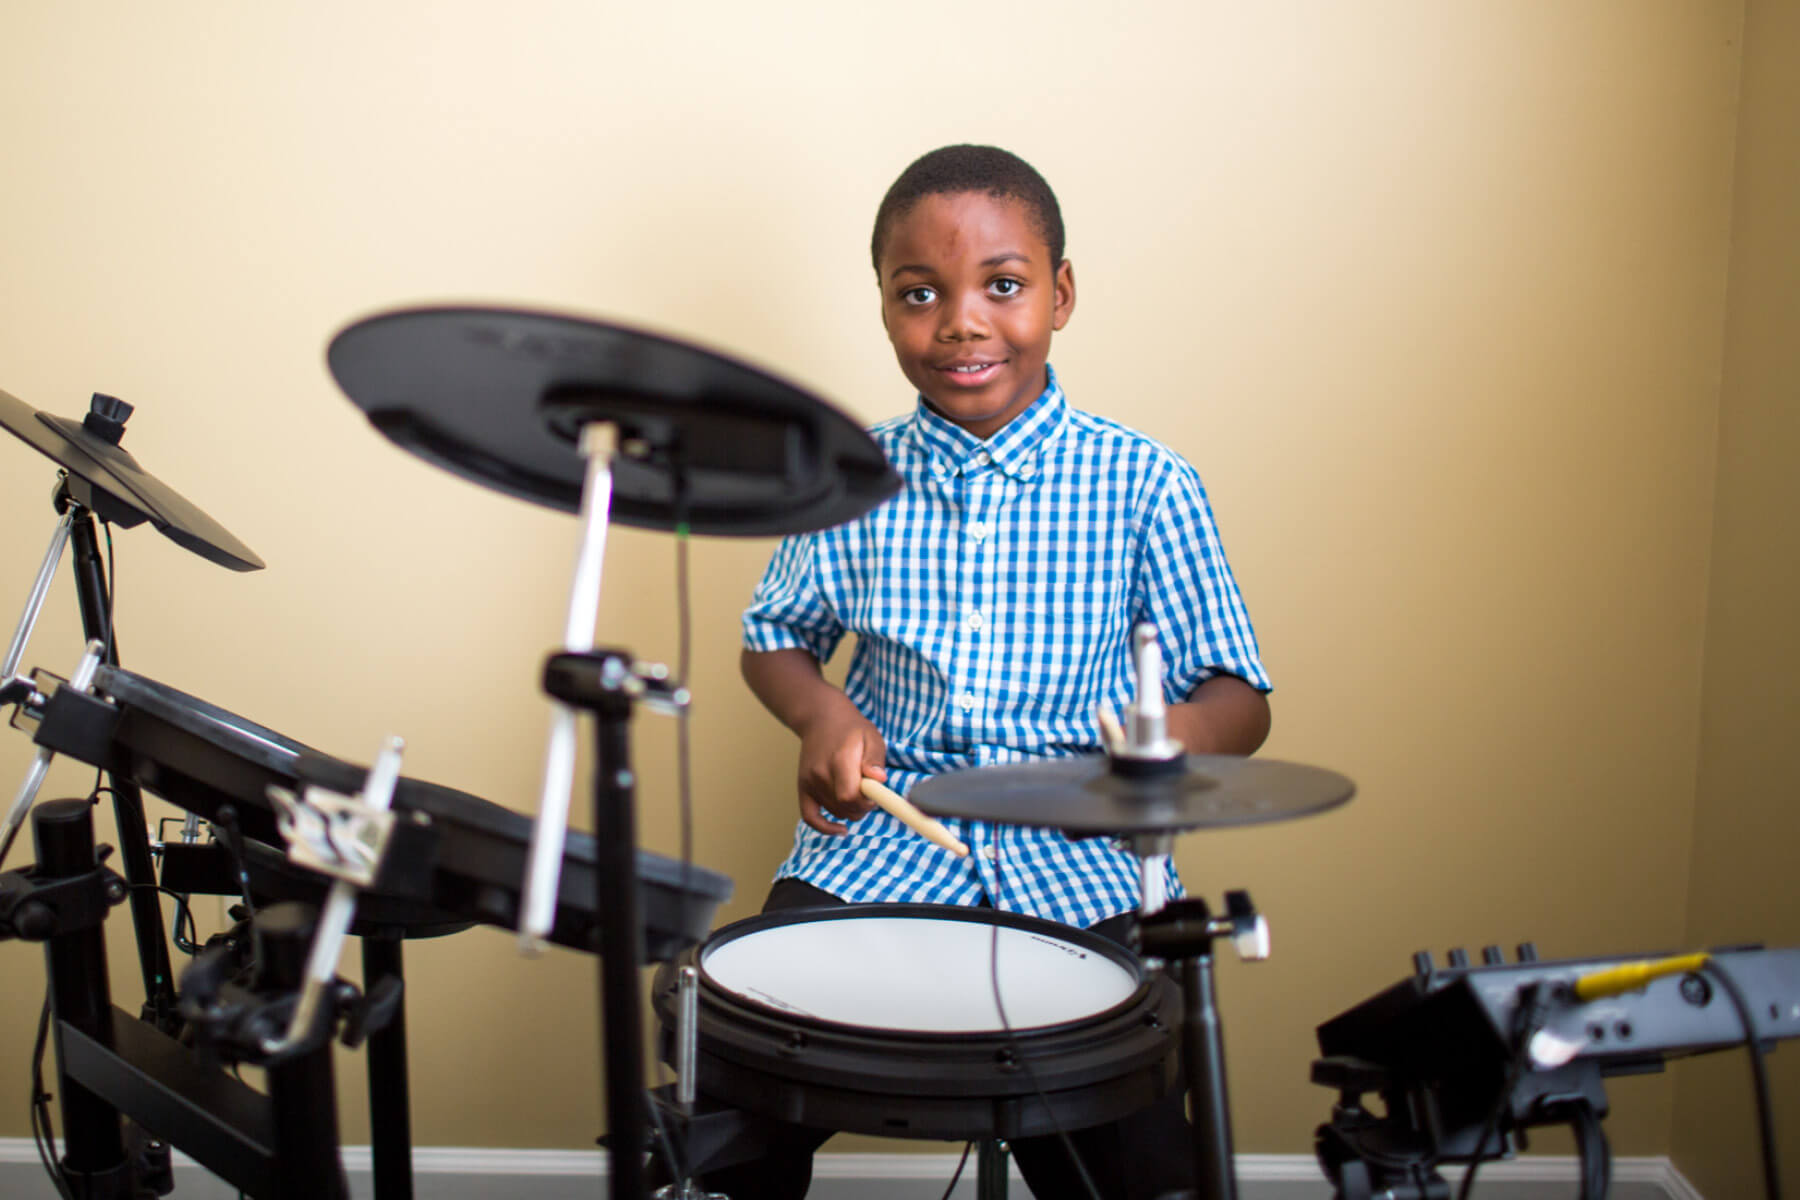 Student playing drums.